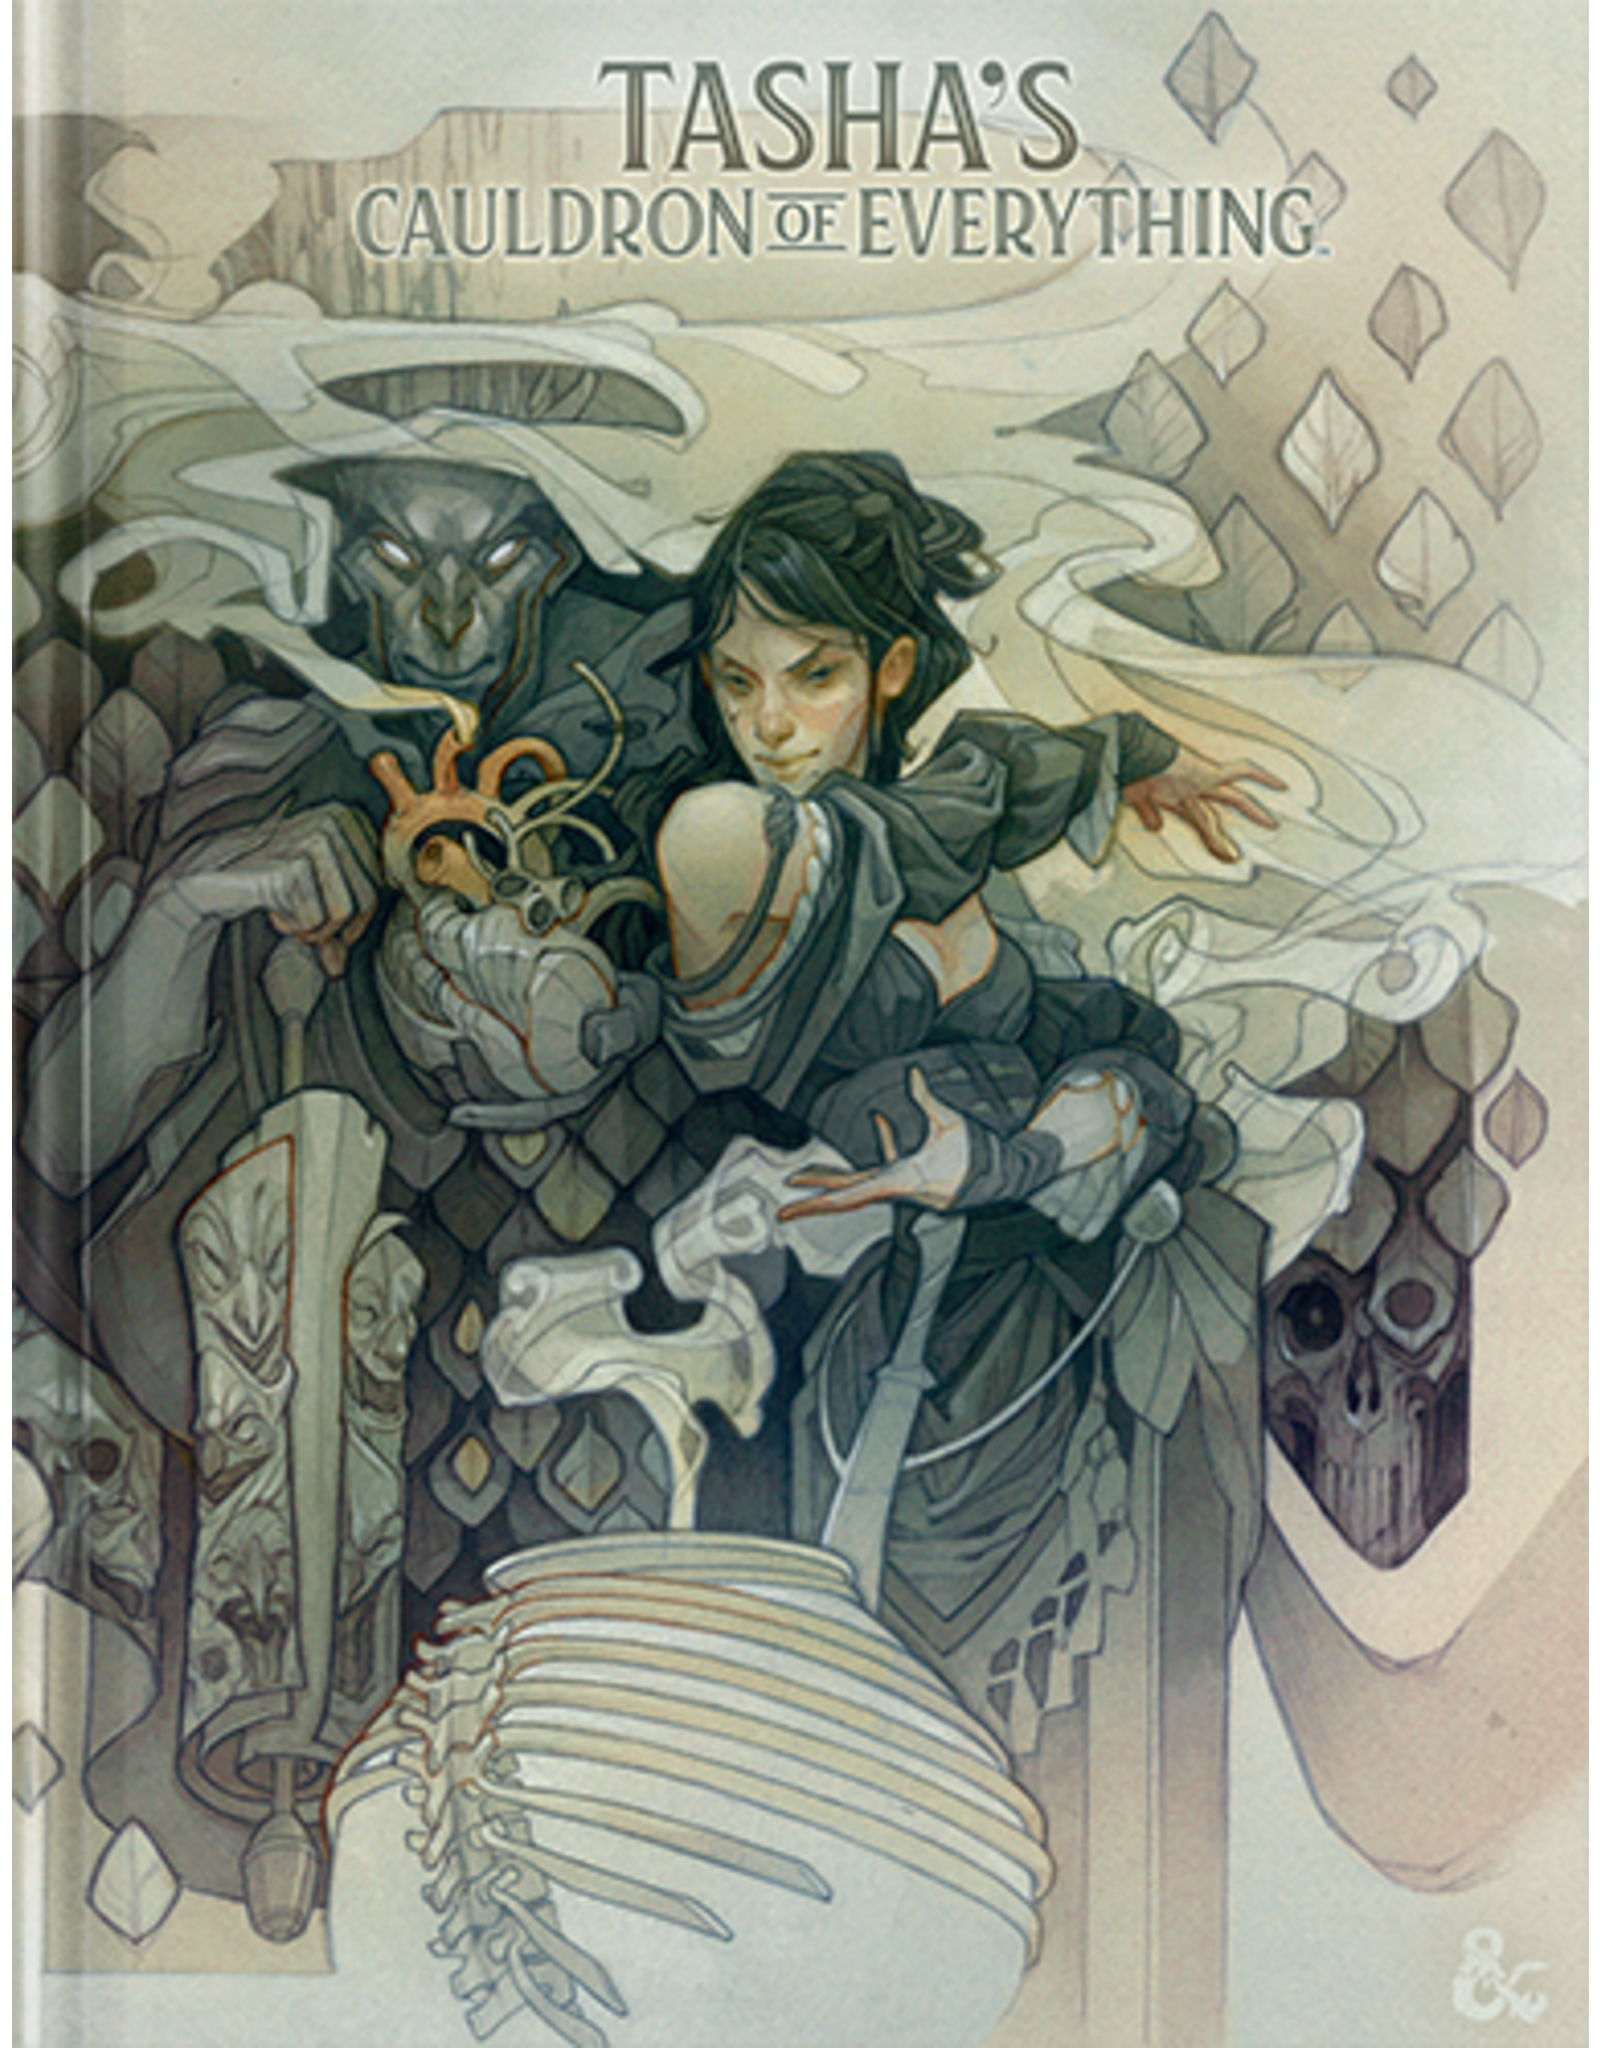 Wizards of the Coast Preorder Tasha's Cauldron of Everything Limited Edition Alternate Cover